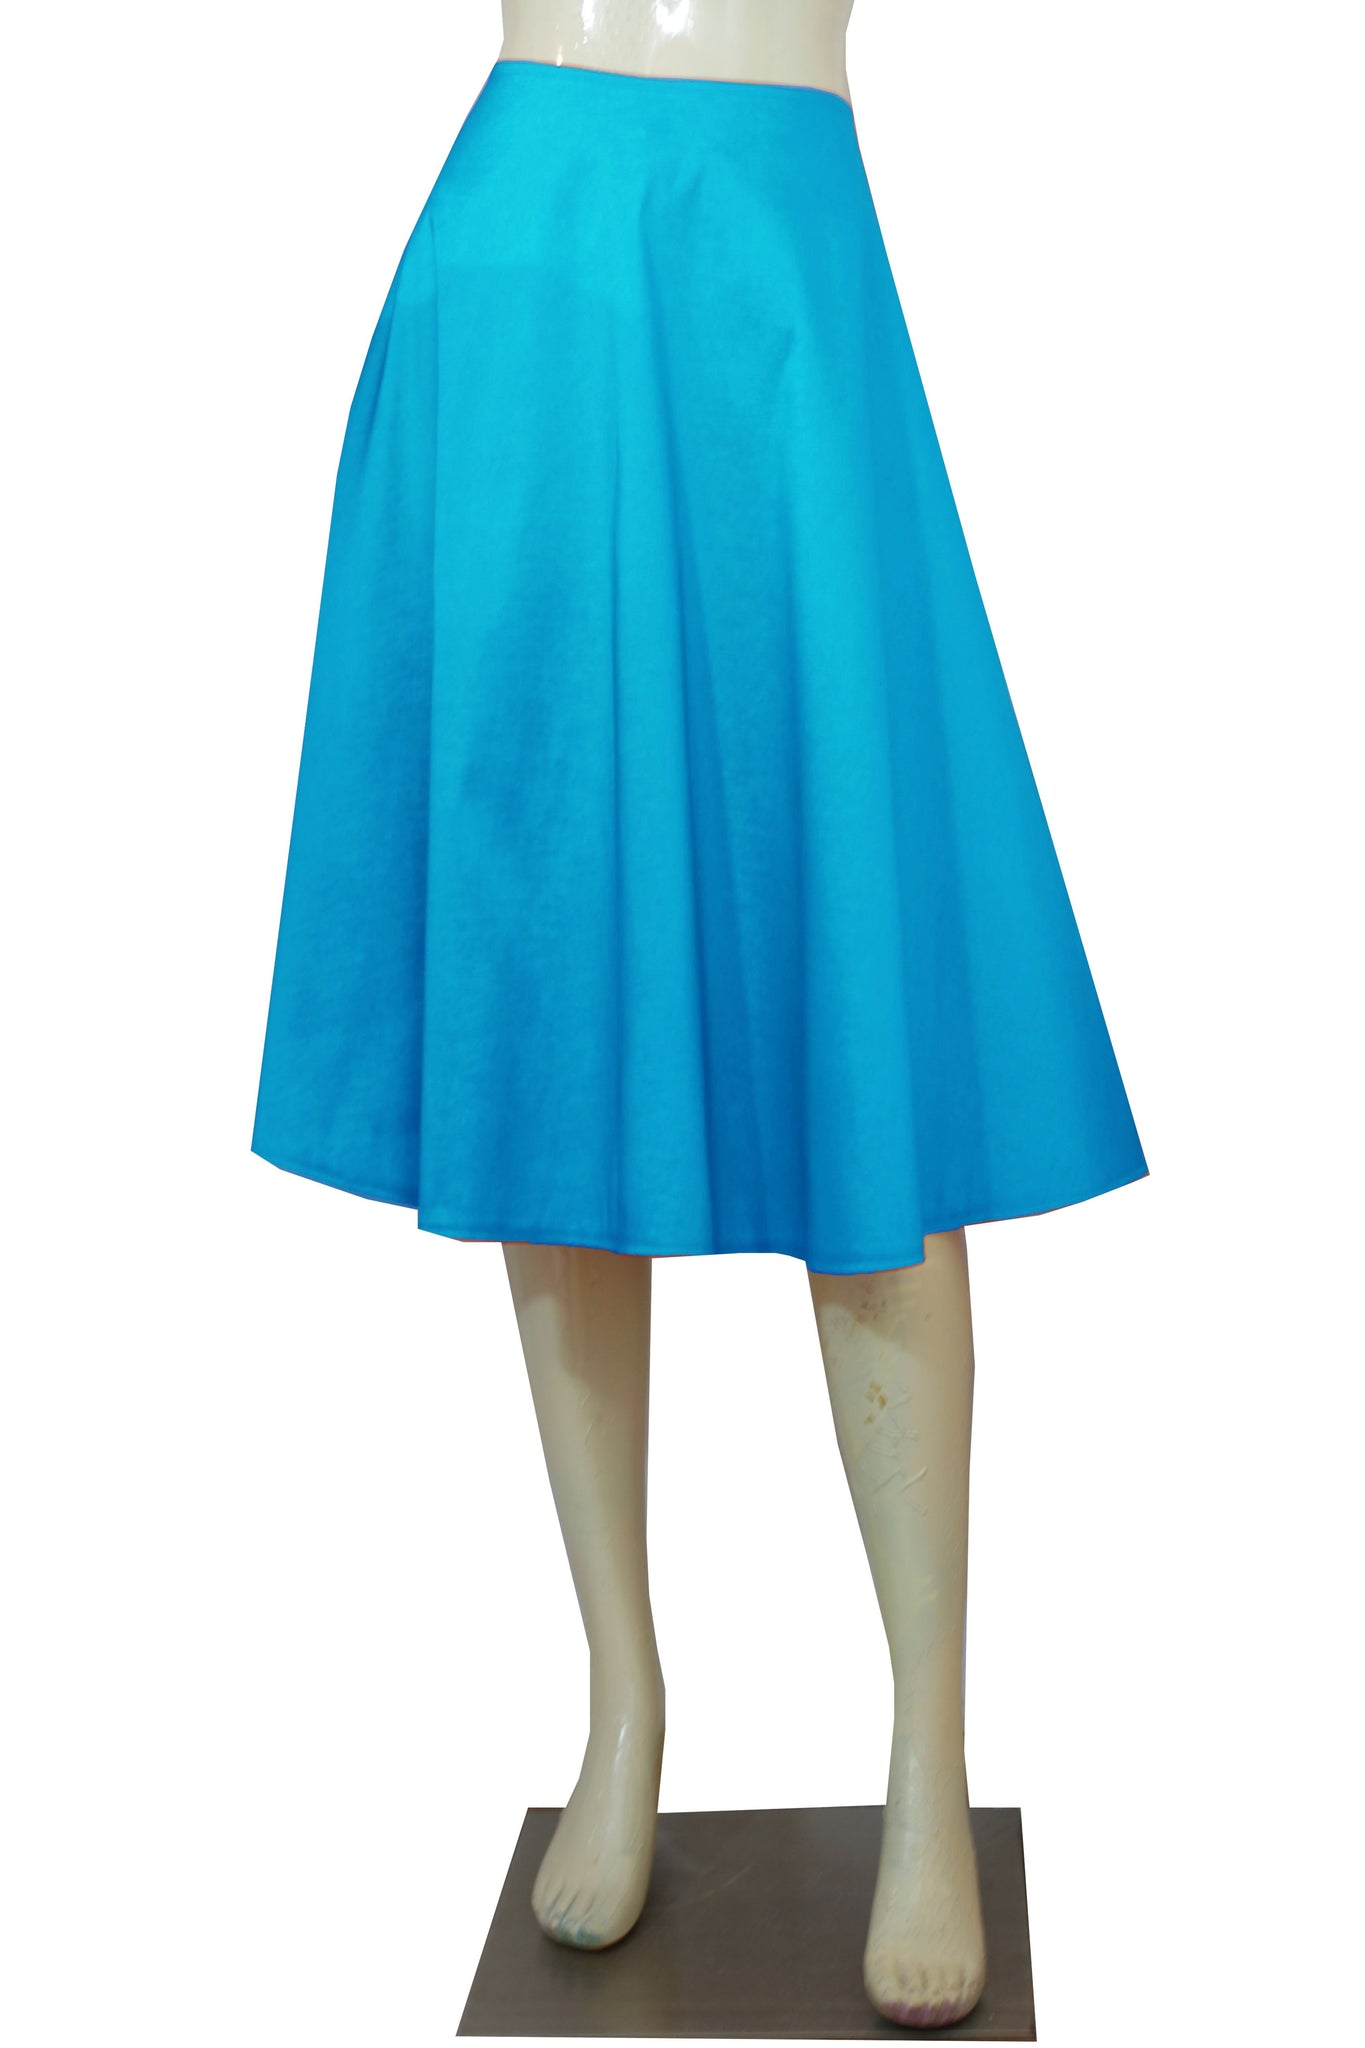 tea length taffeta skirt sky blue plus size skirt a-line midi skirt bridesmaids evening cocktail skirt